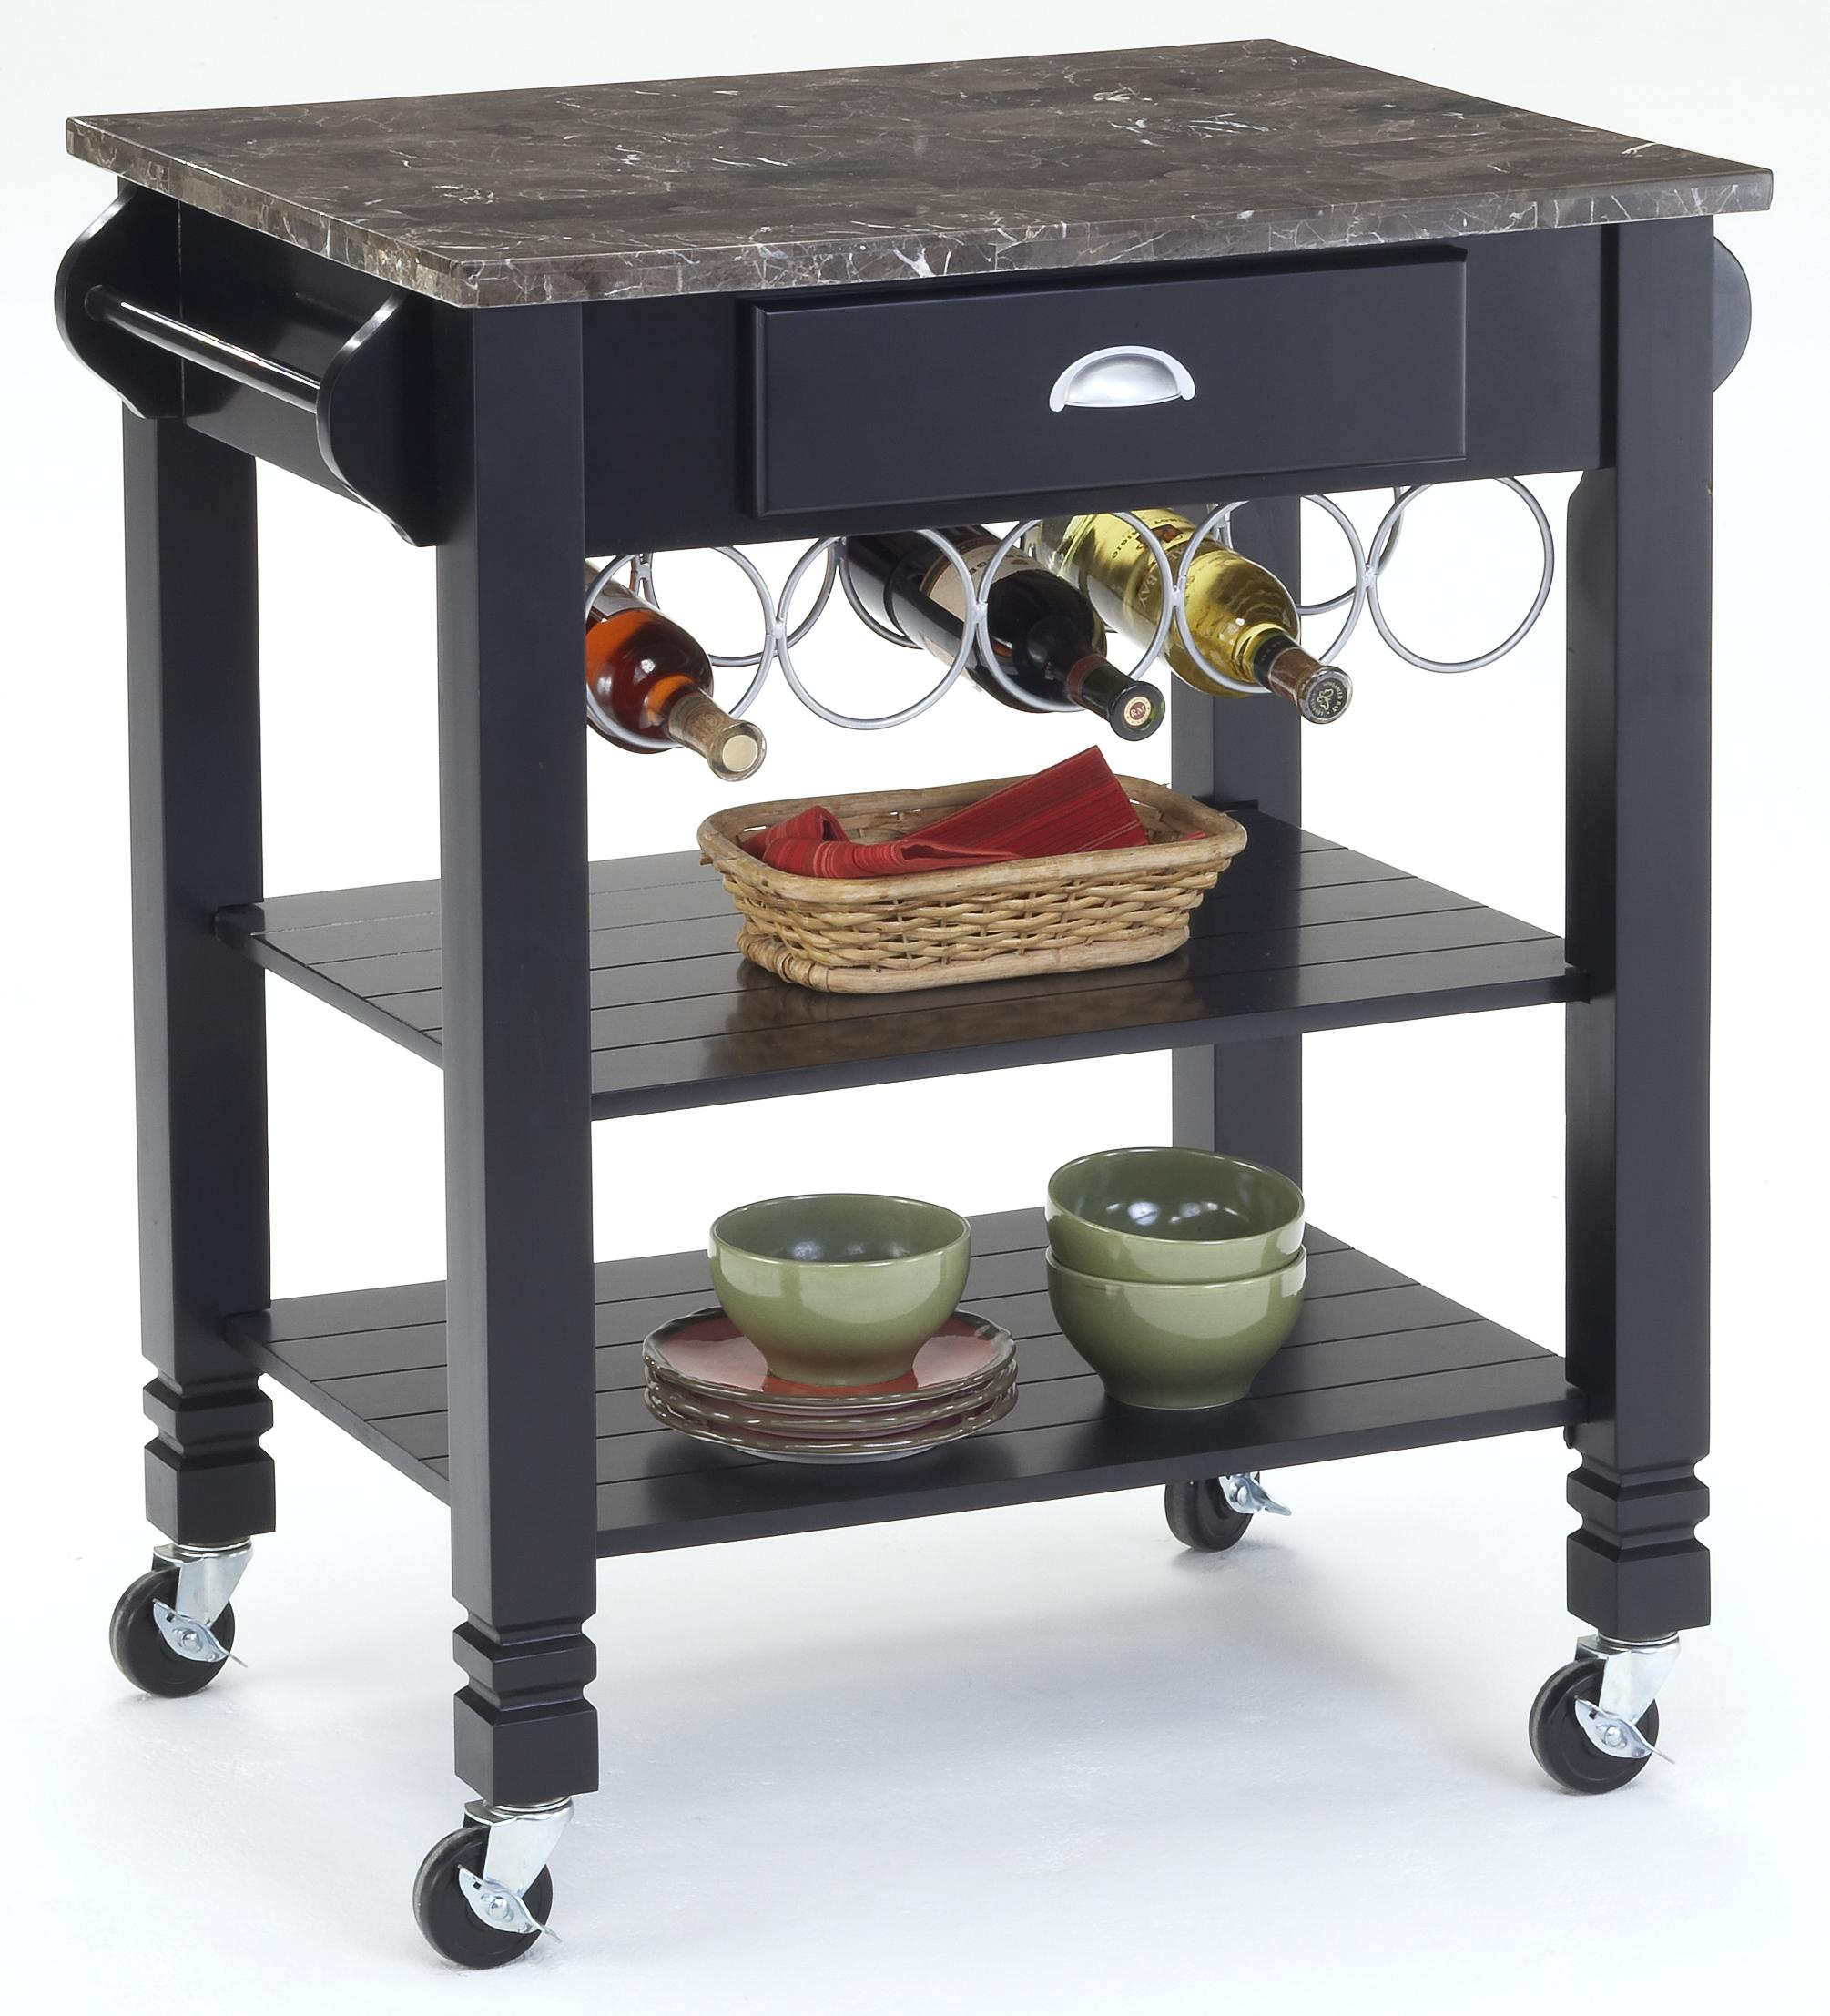 Bernards Kitchen Carts Caster Kitchen Island with Marble Top - Item Number: 7432